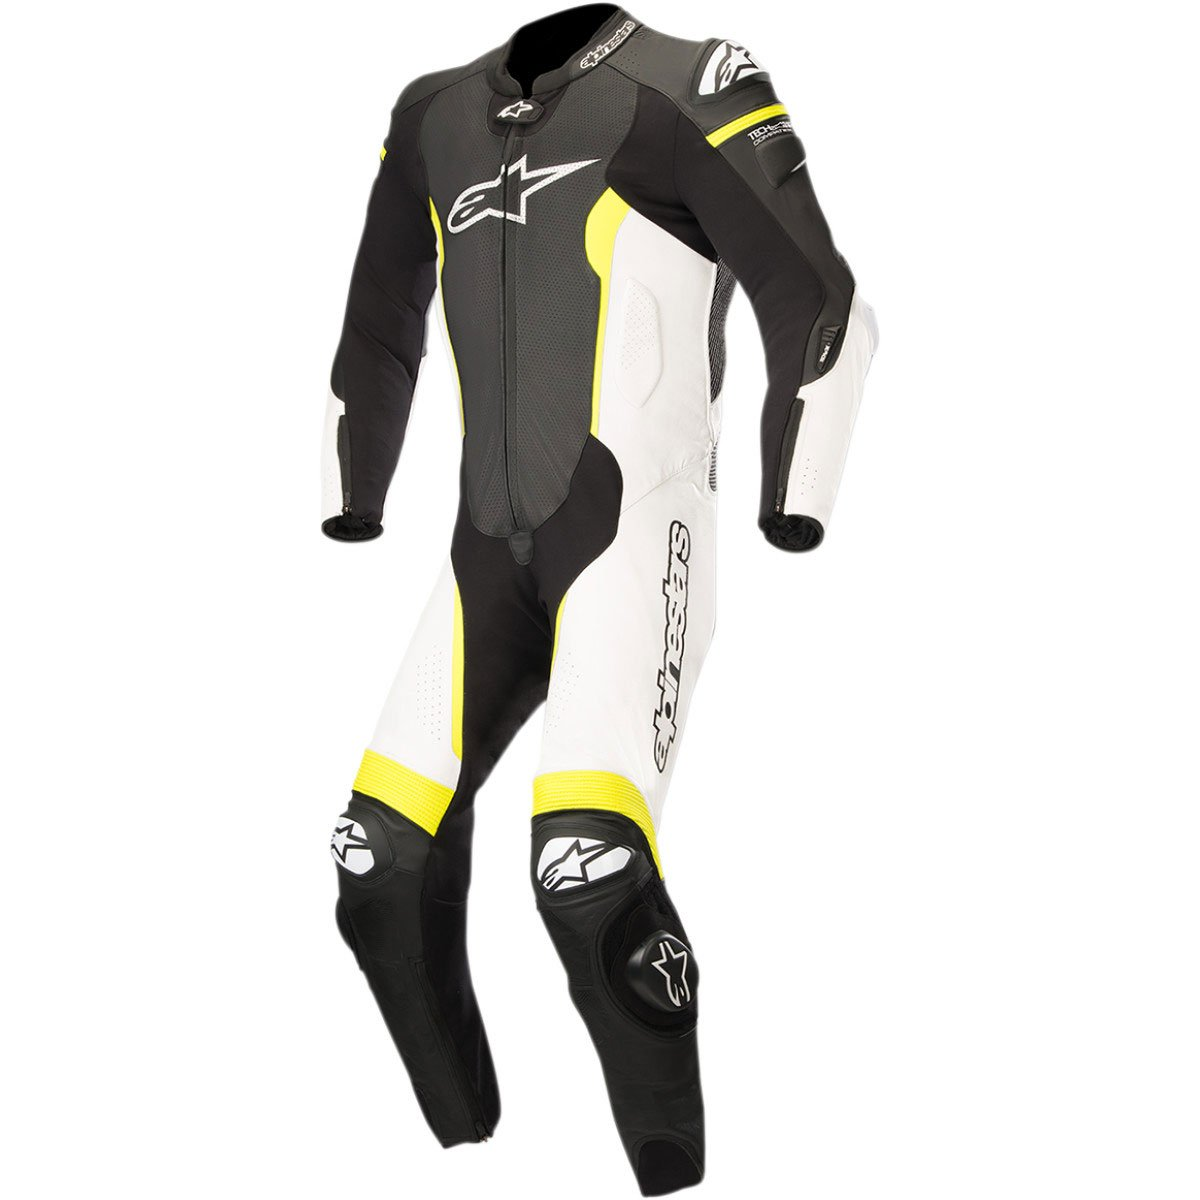 Alpinestars Missile Men's 1-Piece Street Race Suits - Black/White/Yellow / 54